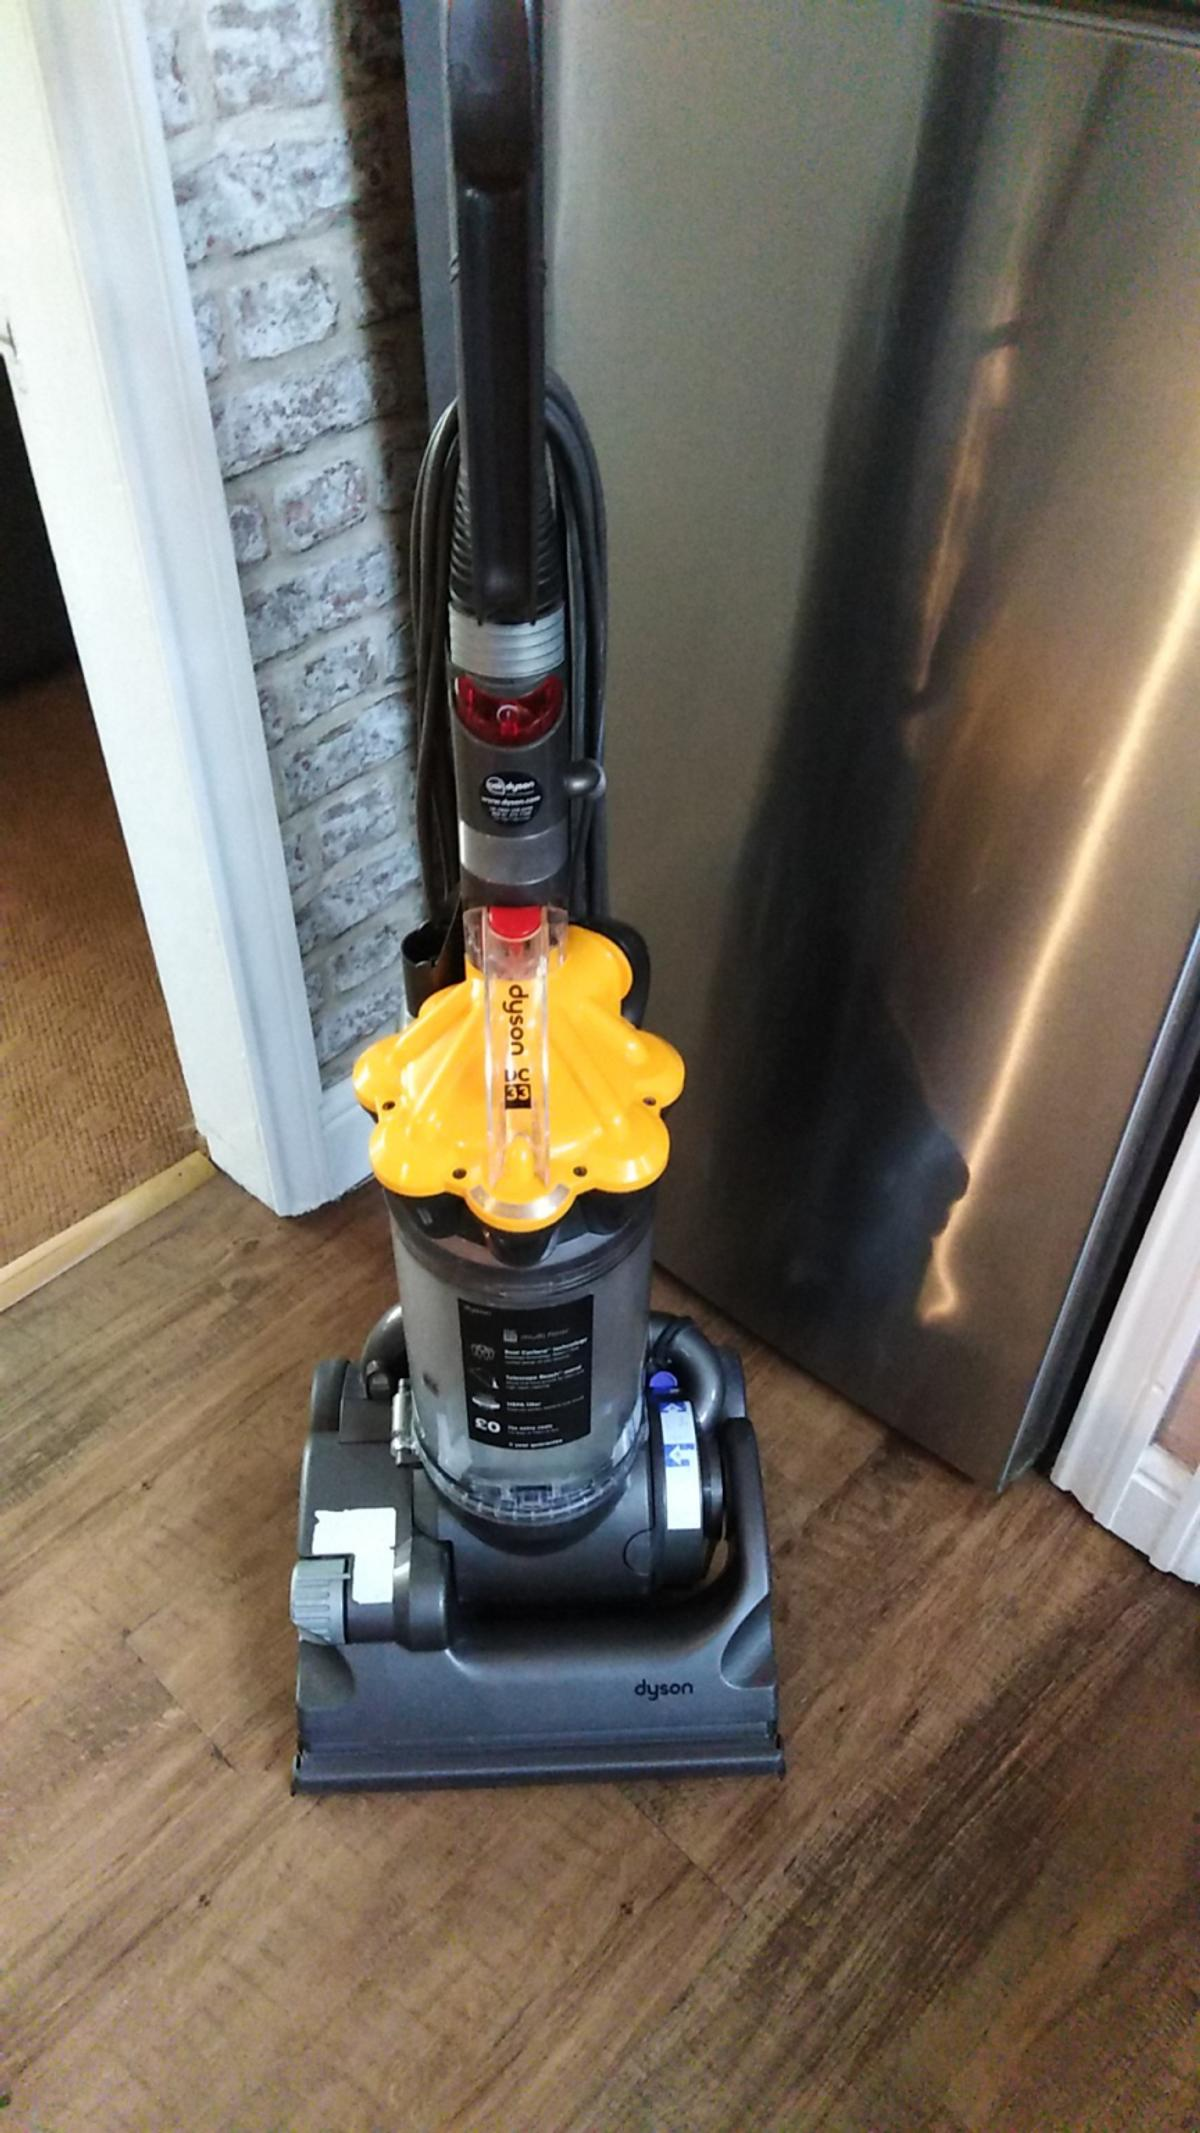 Dyson in great condition has a great suction comes with tools can be shown fully working